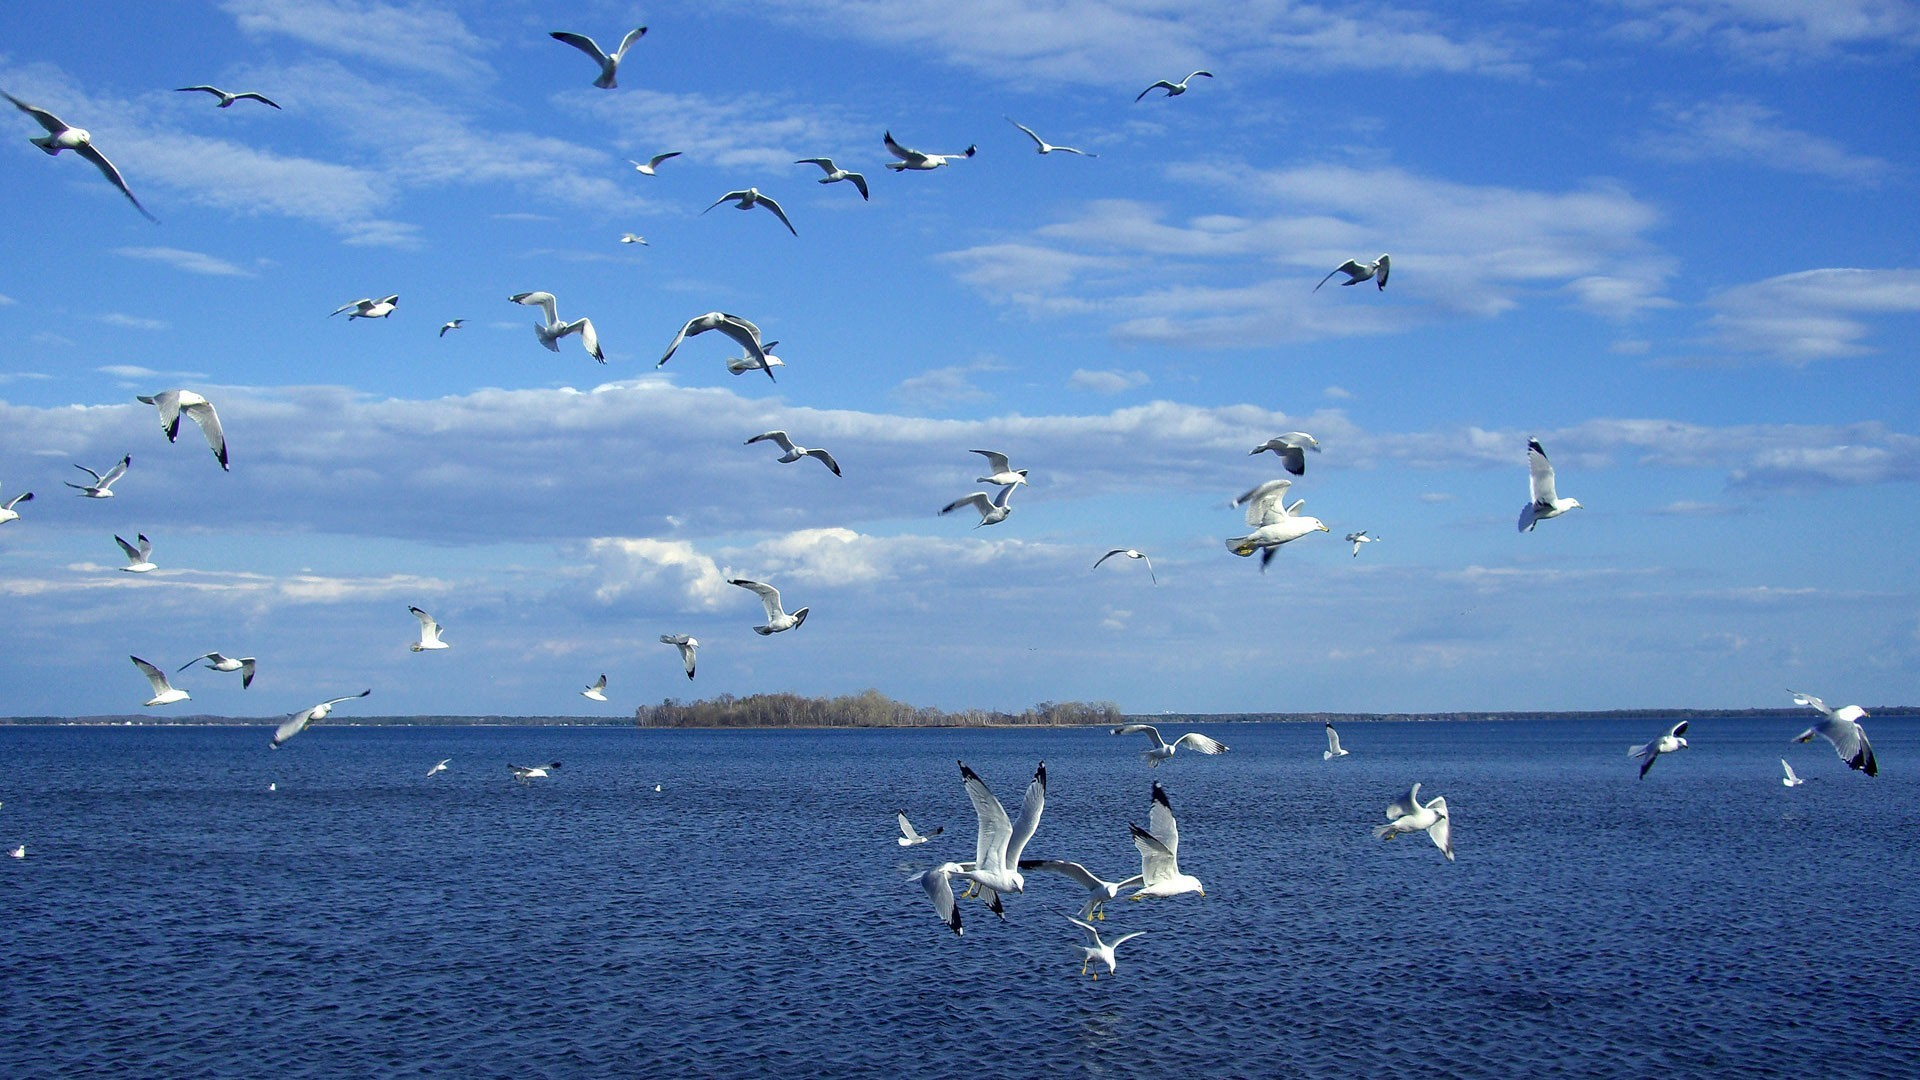 Pictures Images and Photos Birds On Blue Sea Hd Wallpaper Wallpapers 1920x1080